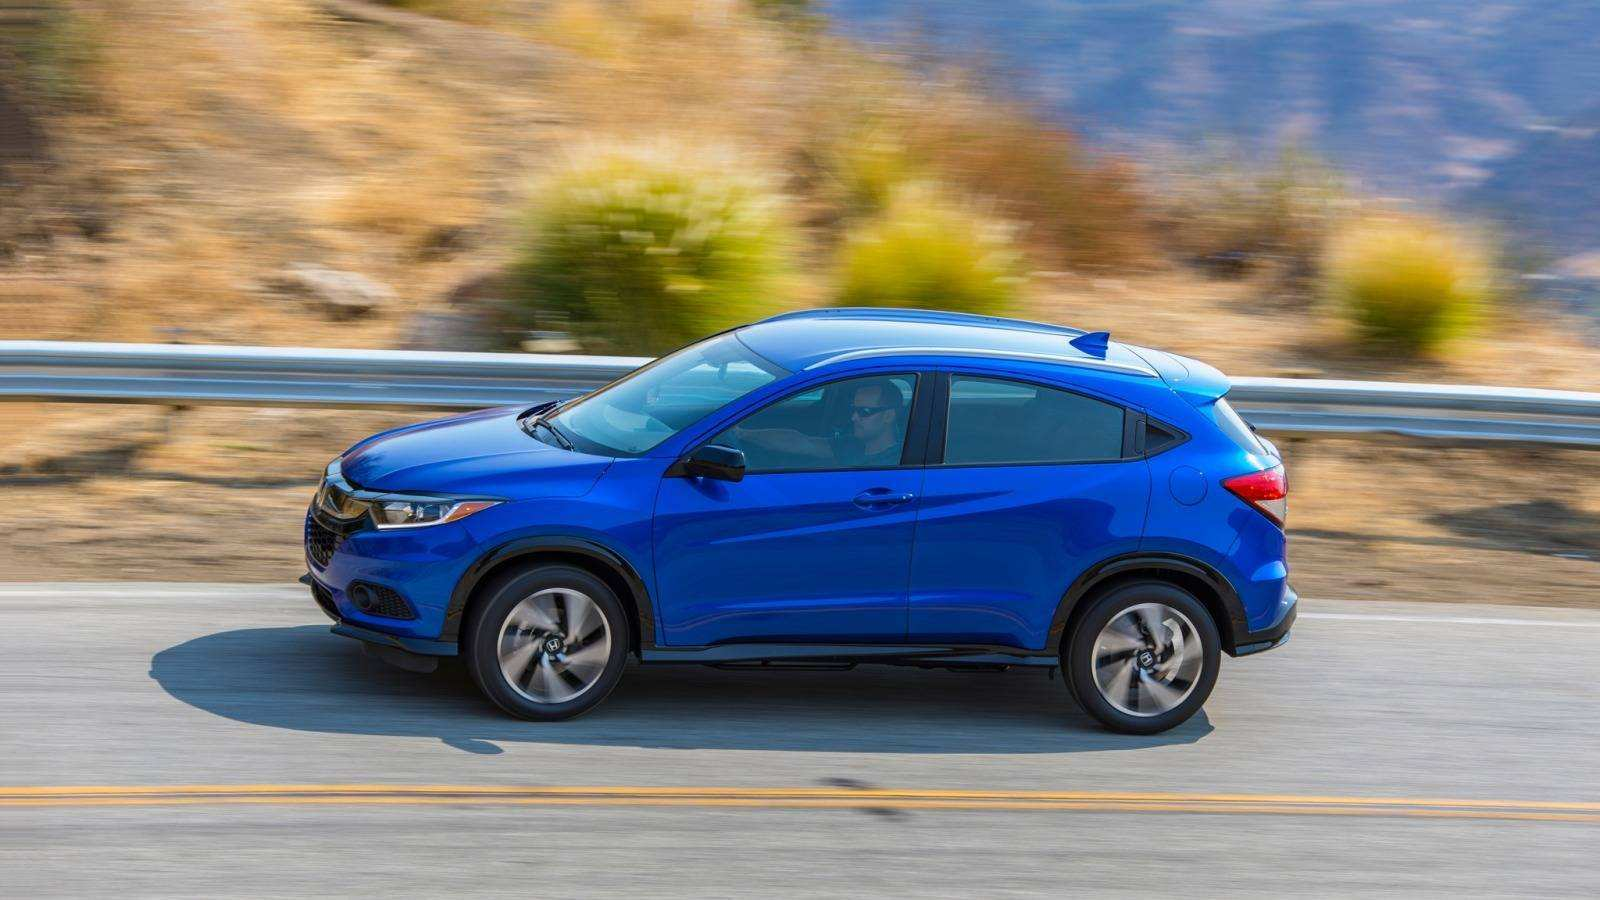 73 Best Review Honda Hrv 2019 Performance and New Engine with Honda Hrv 2019